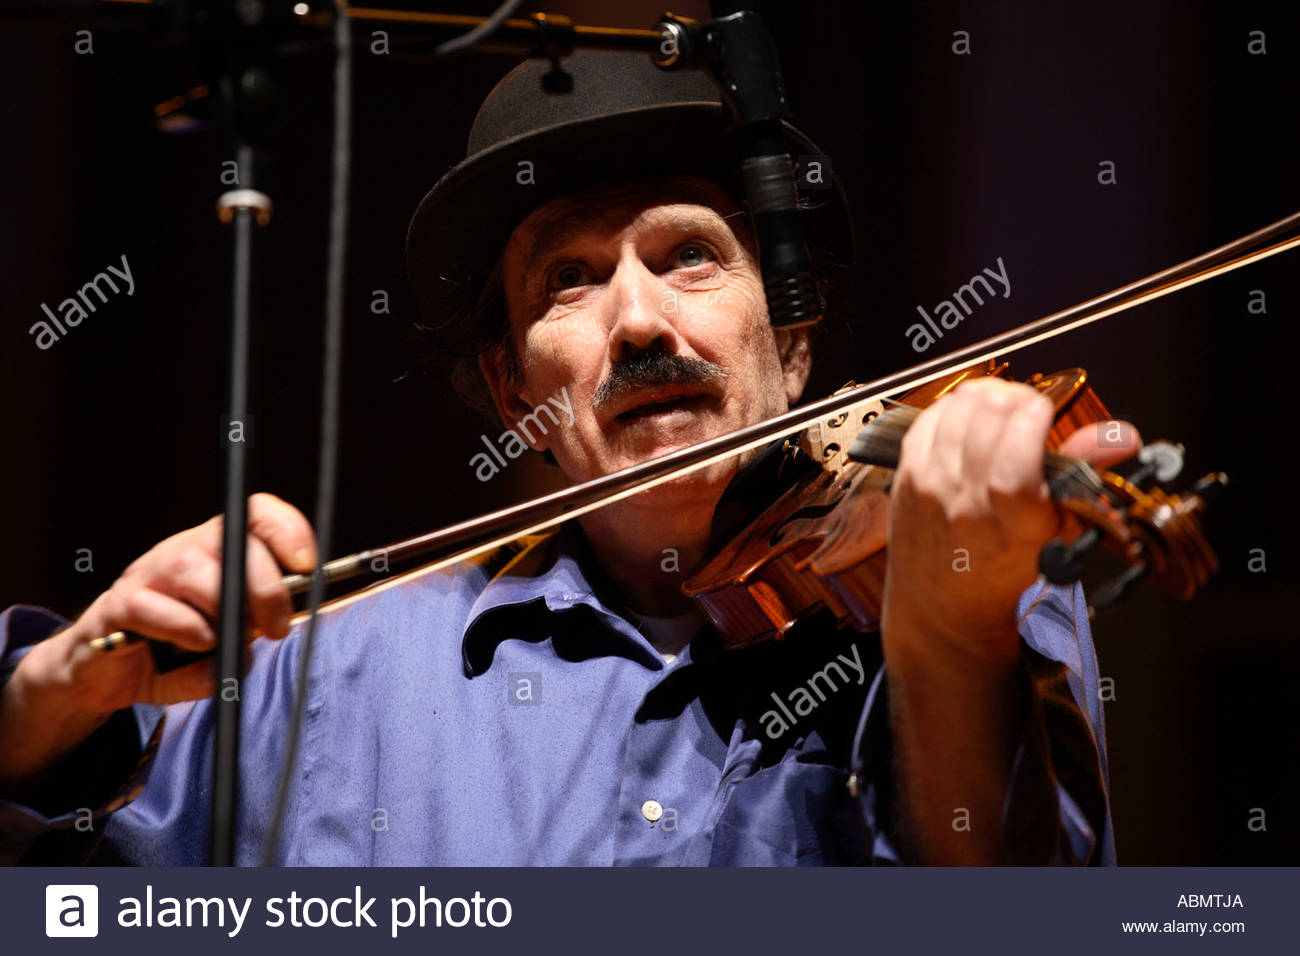 Members of the White Top Mountain Band perform at the Strathmore Music Center in North Bethesda Maryland - Stock Image